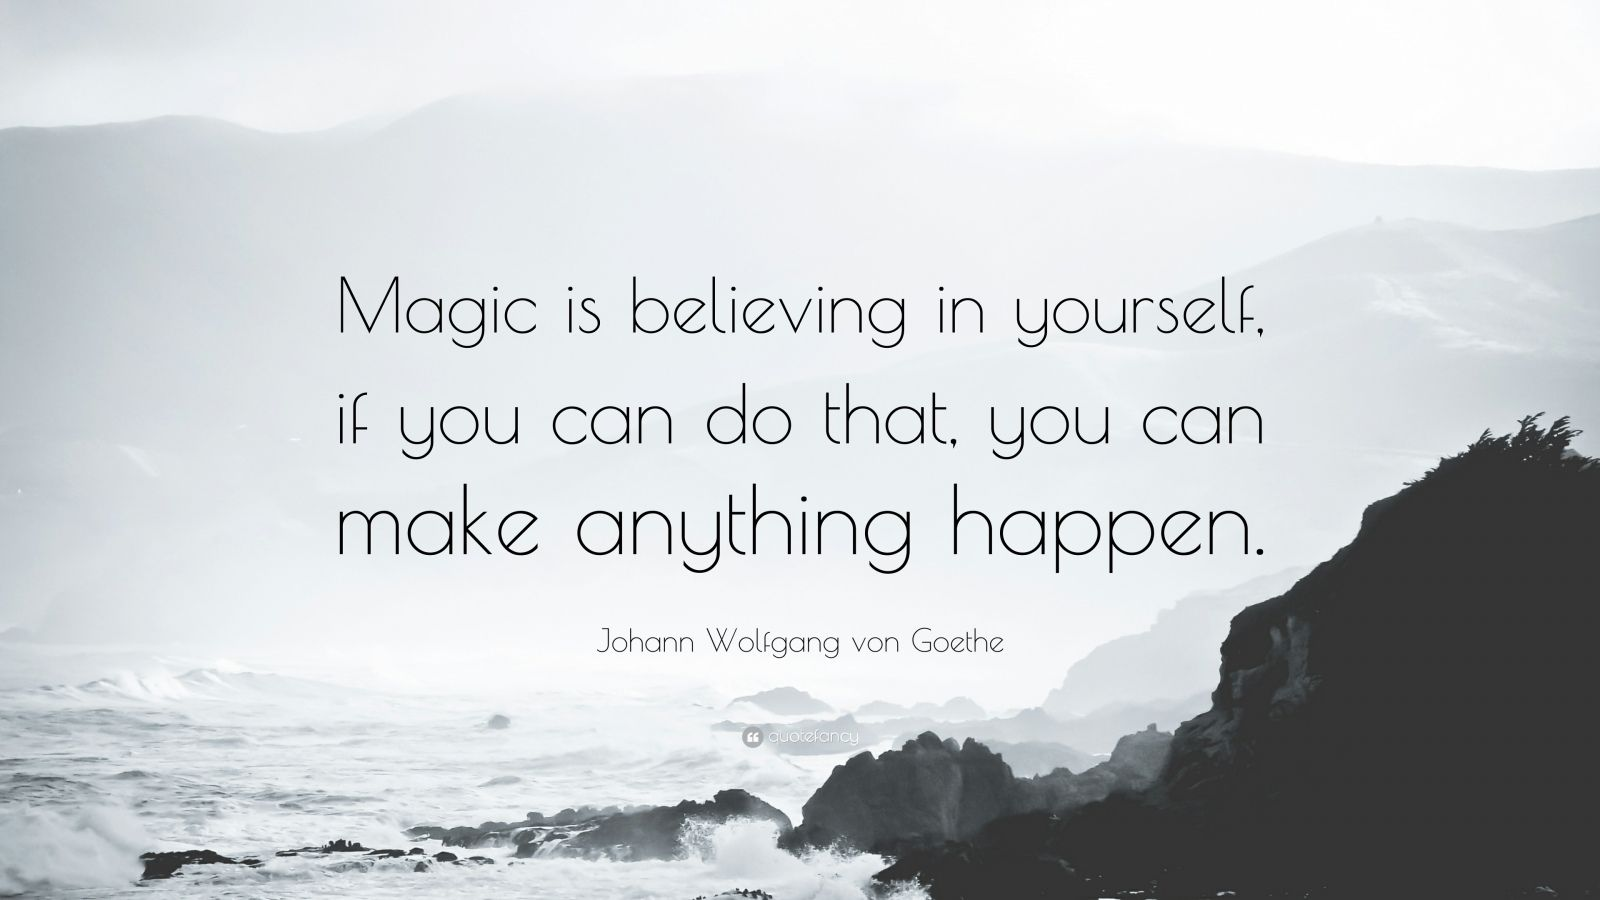 """Johann Wolfgang von Goethe Quote: """"Magic is believing in yourself, if you can do that, you can make anything happen."""""""